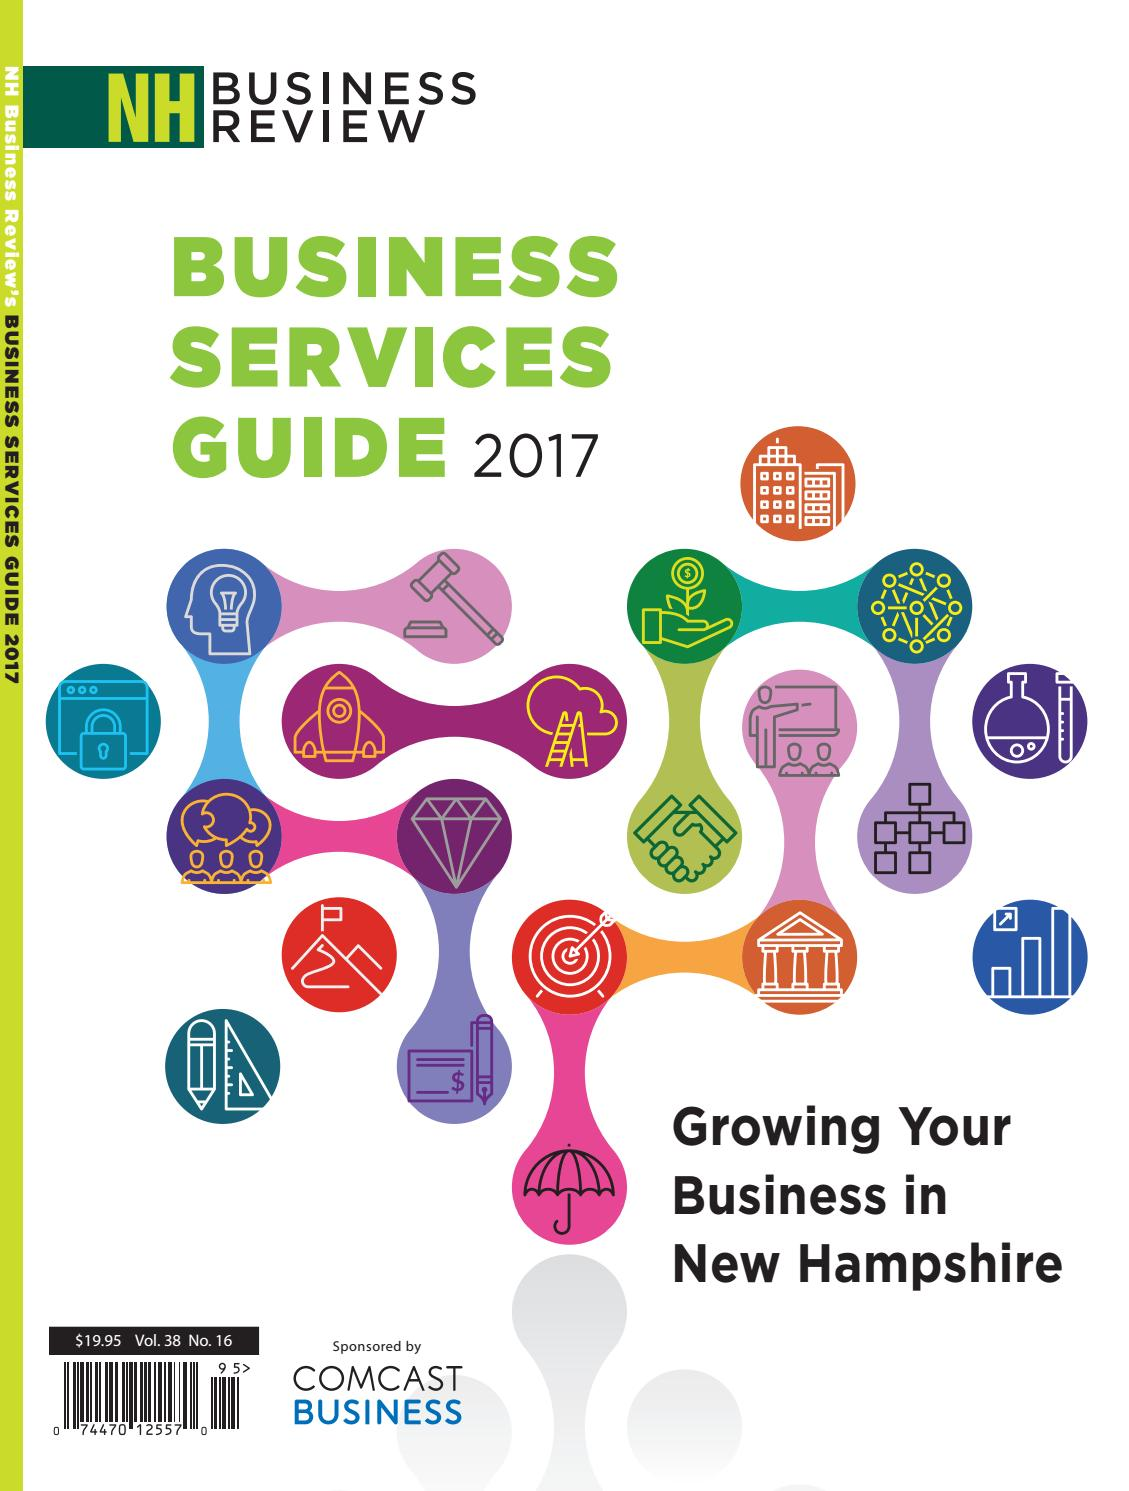 2017 Nh Business Review Services Guide By Mclean Radio Wiring Harness For Model Cdm 7874 Communications Issuu